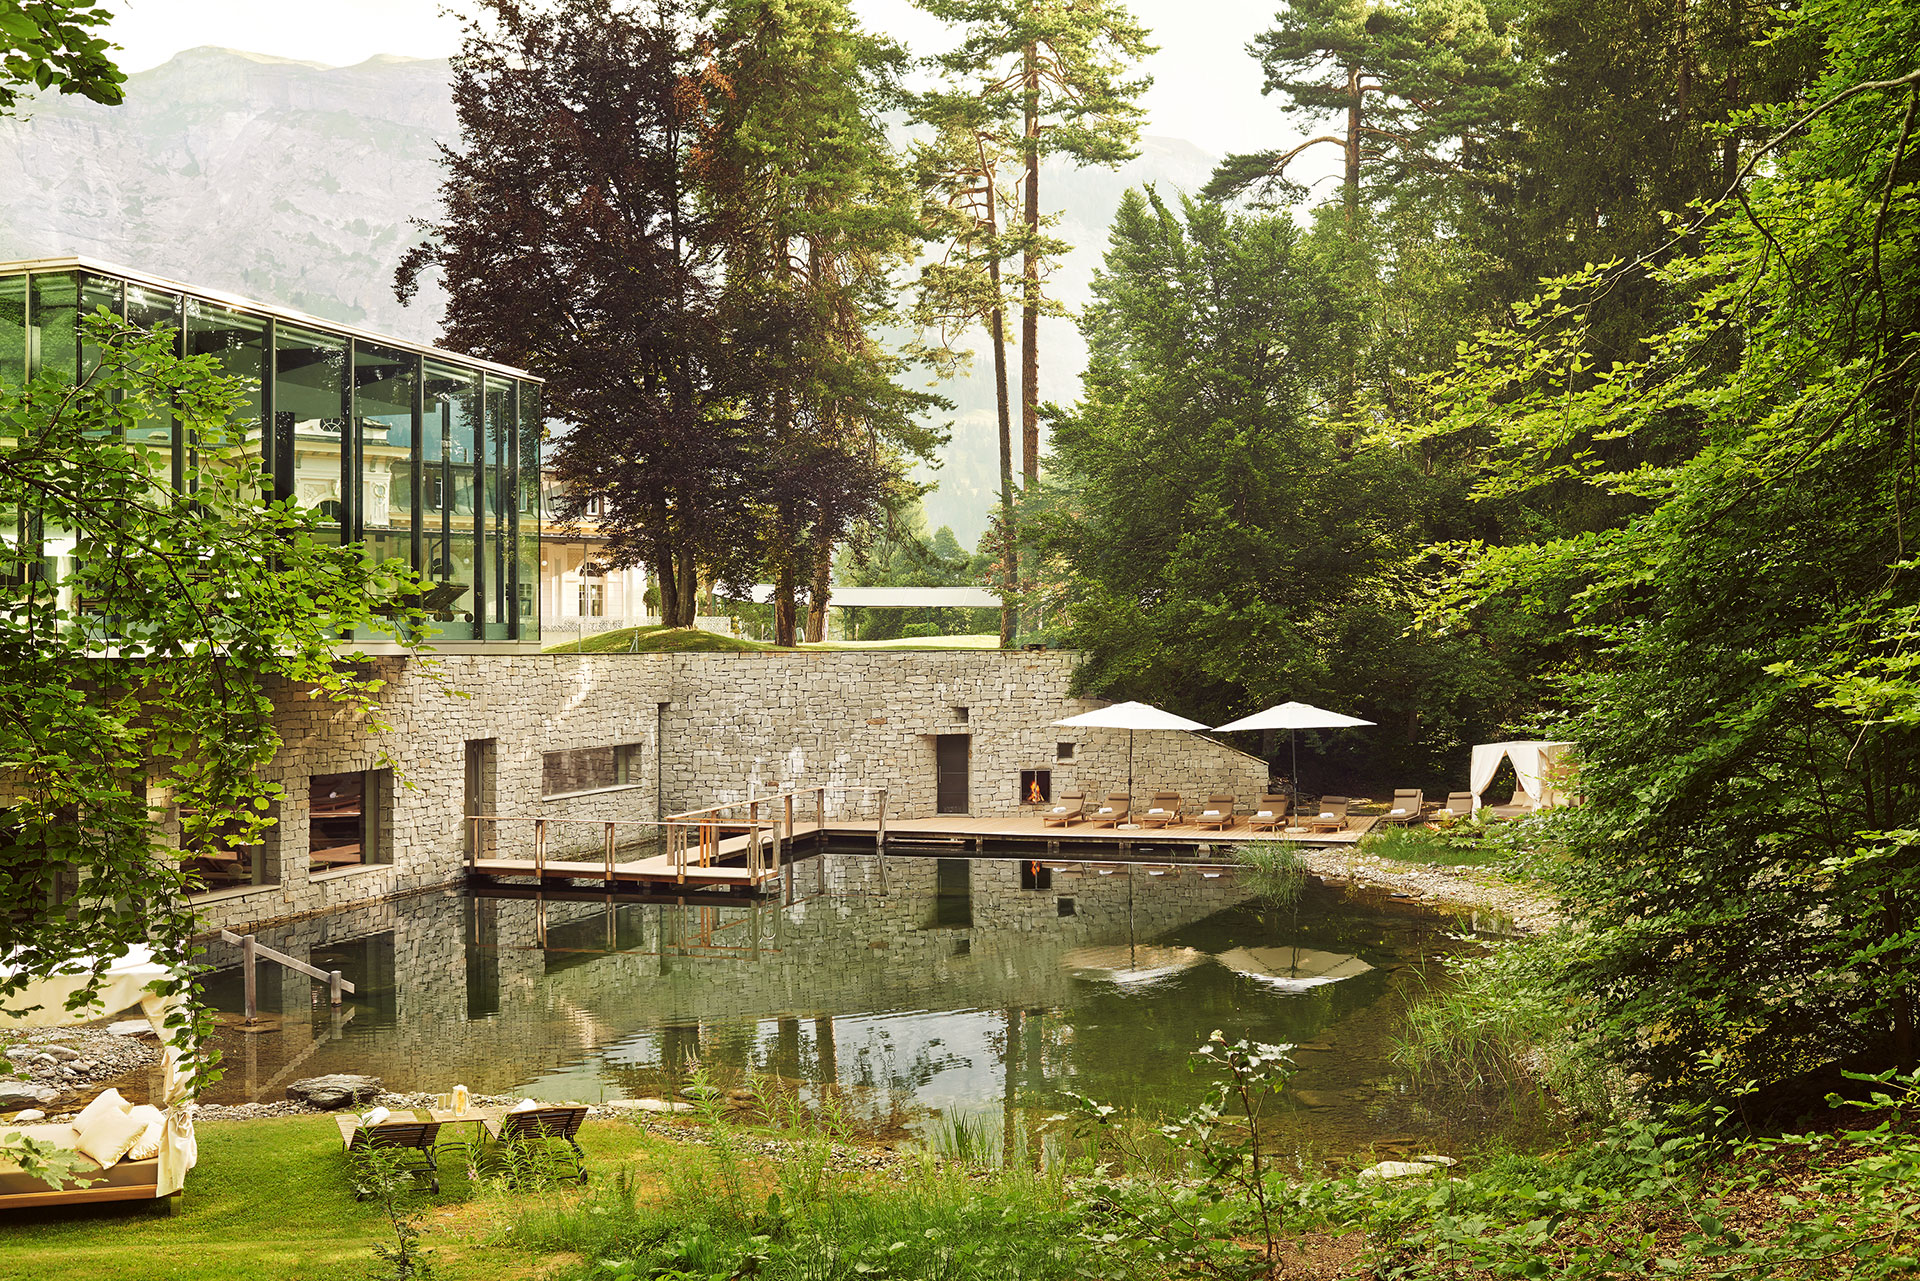 Landscape shot of the resort's pool. The pool is surrounded by lush greenery. The pool leads into the spa and there is a wooden bridge that leads guests inside to the outside and vice versa. Lining the pool are brown lounge chairs and white umbrellas. In the background there is a view of the swiss alps